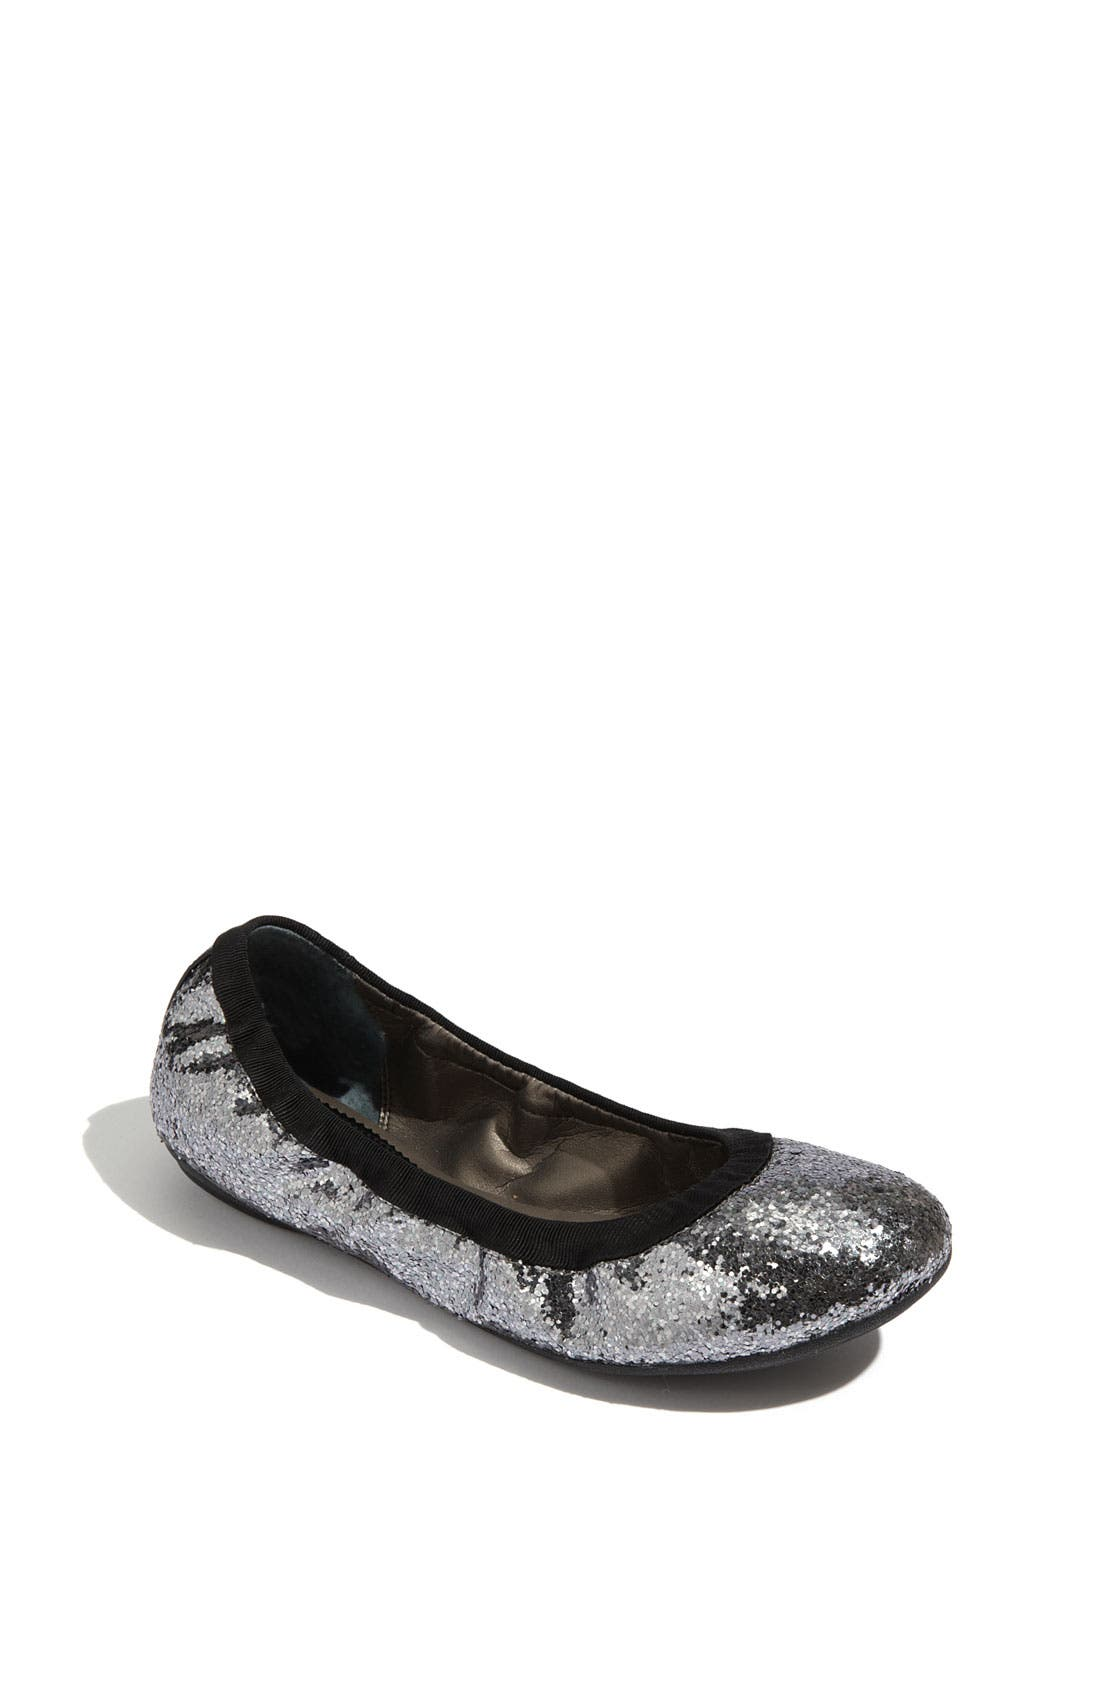 Alternate Image 1 Selected - Nordstrom 'Callen Glitter' Flat (Walker, Toddler, Little Kid & Big Kid)